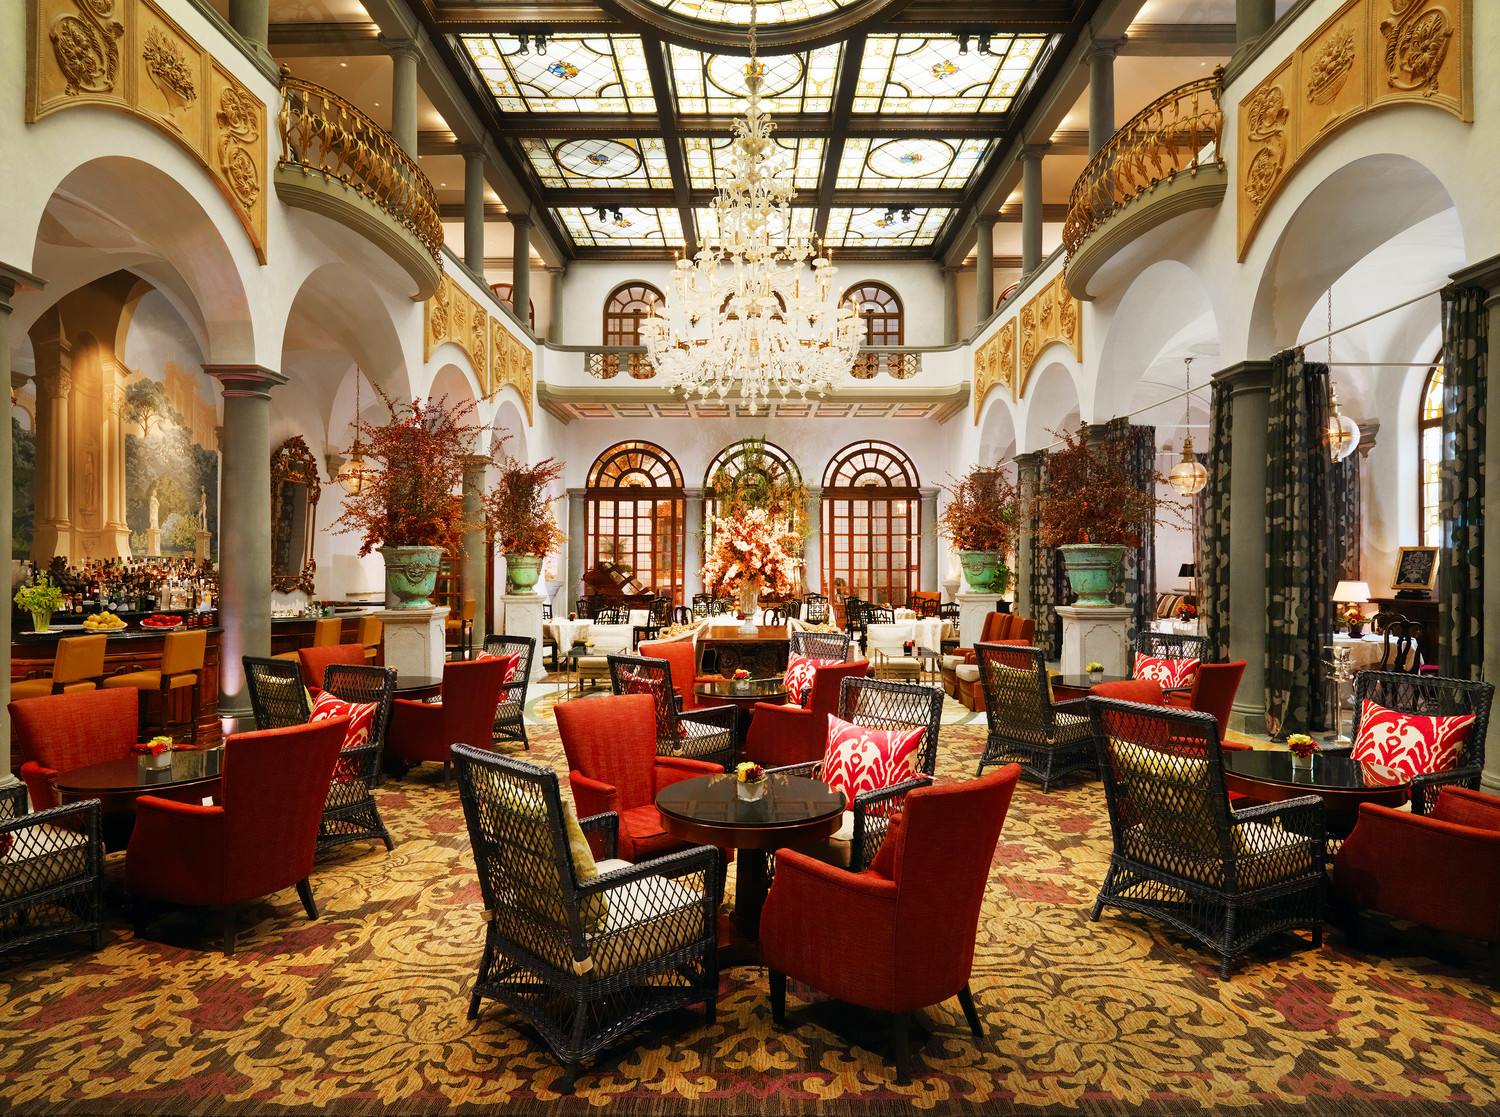 earn starpoints and save up to 30 off when dining with spg cravings